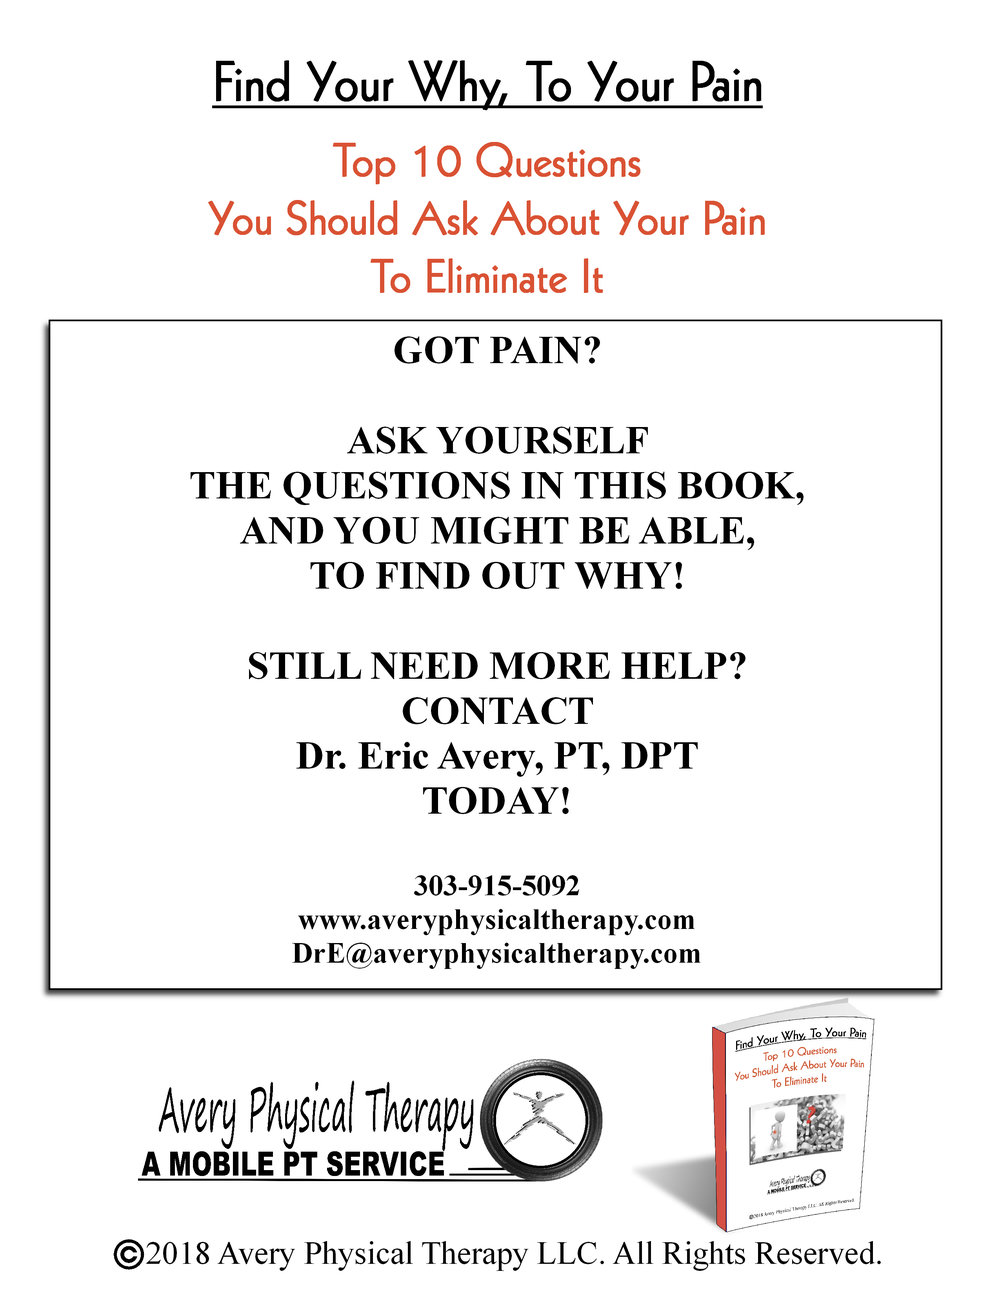 Top 10 Pain Questions 4-6B.JPG